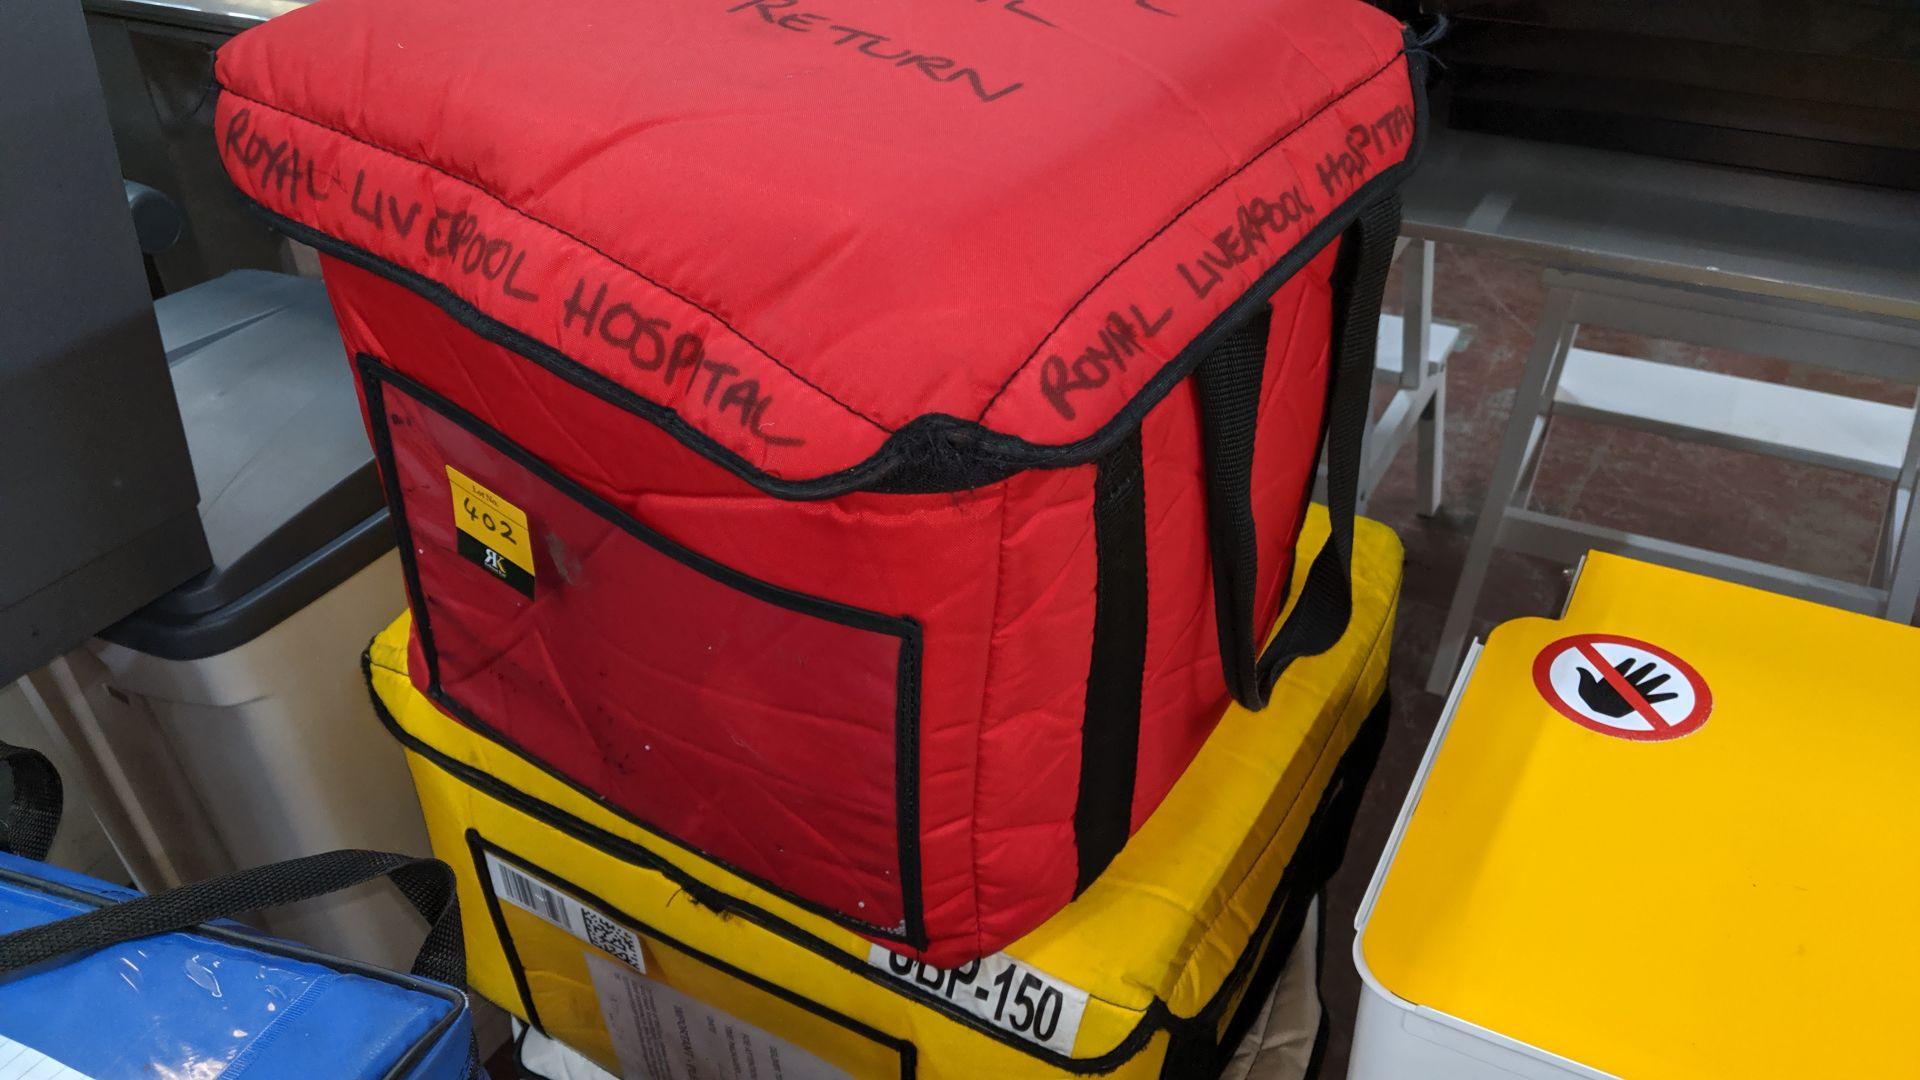 Lot 402 - 3 assorted blood/medical insulated carry bags. This is one of a large number of lots used/owned by